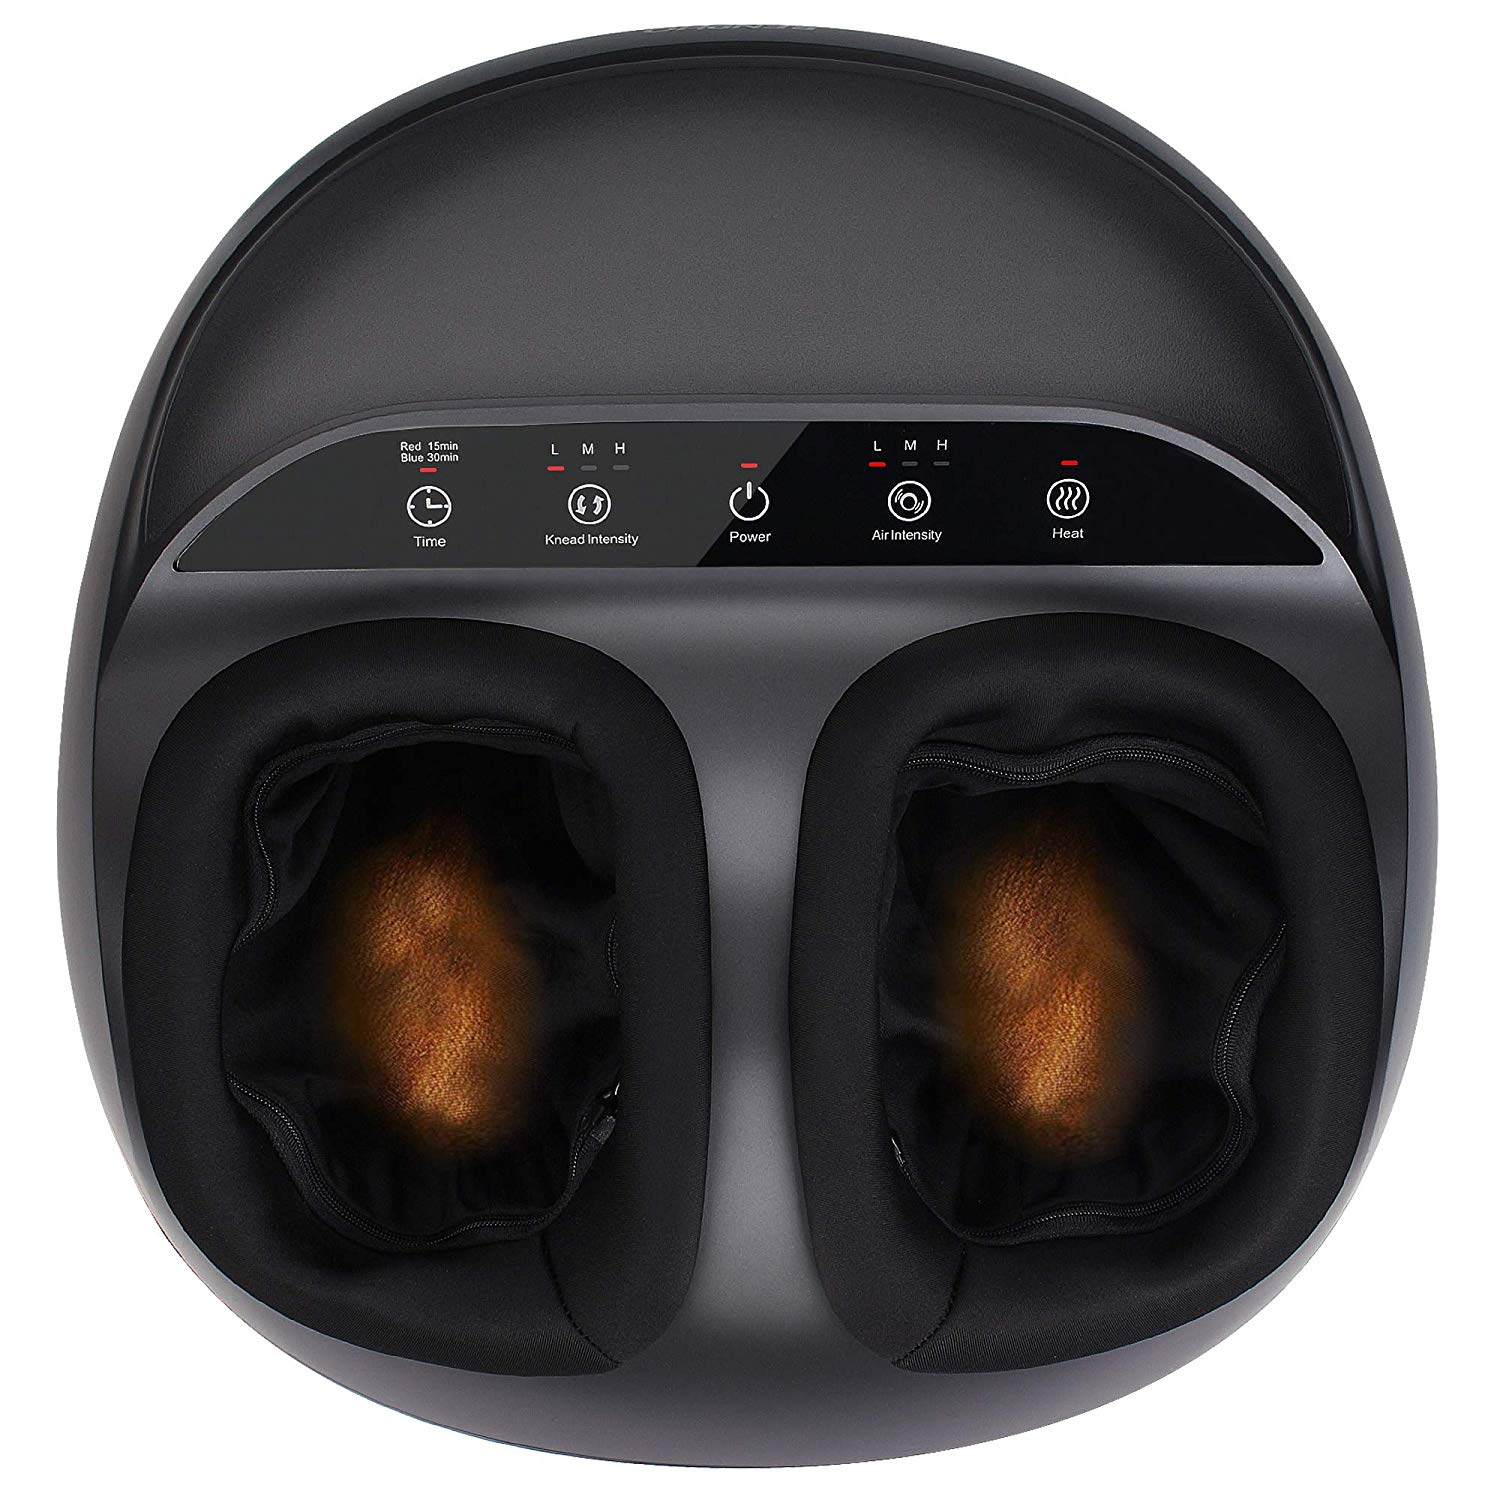 RENPHO Shiatsu Foot Massager Machine with Heat, Deep Kneading Therapy, Air Compression, Relieve Foot Pain from Plantar Fasciitis, Improve Blood Circulation, Insomnia, Fits large feet